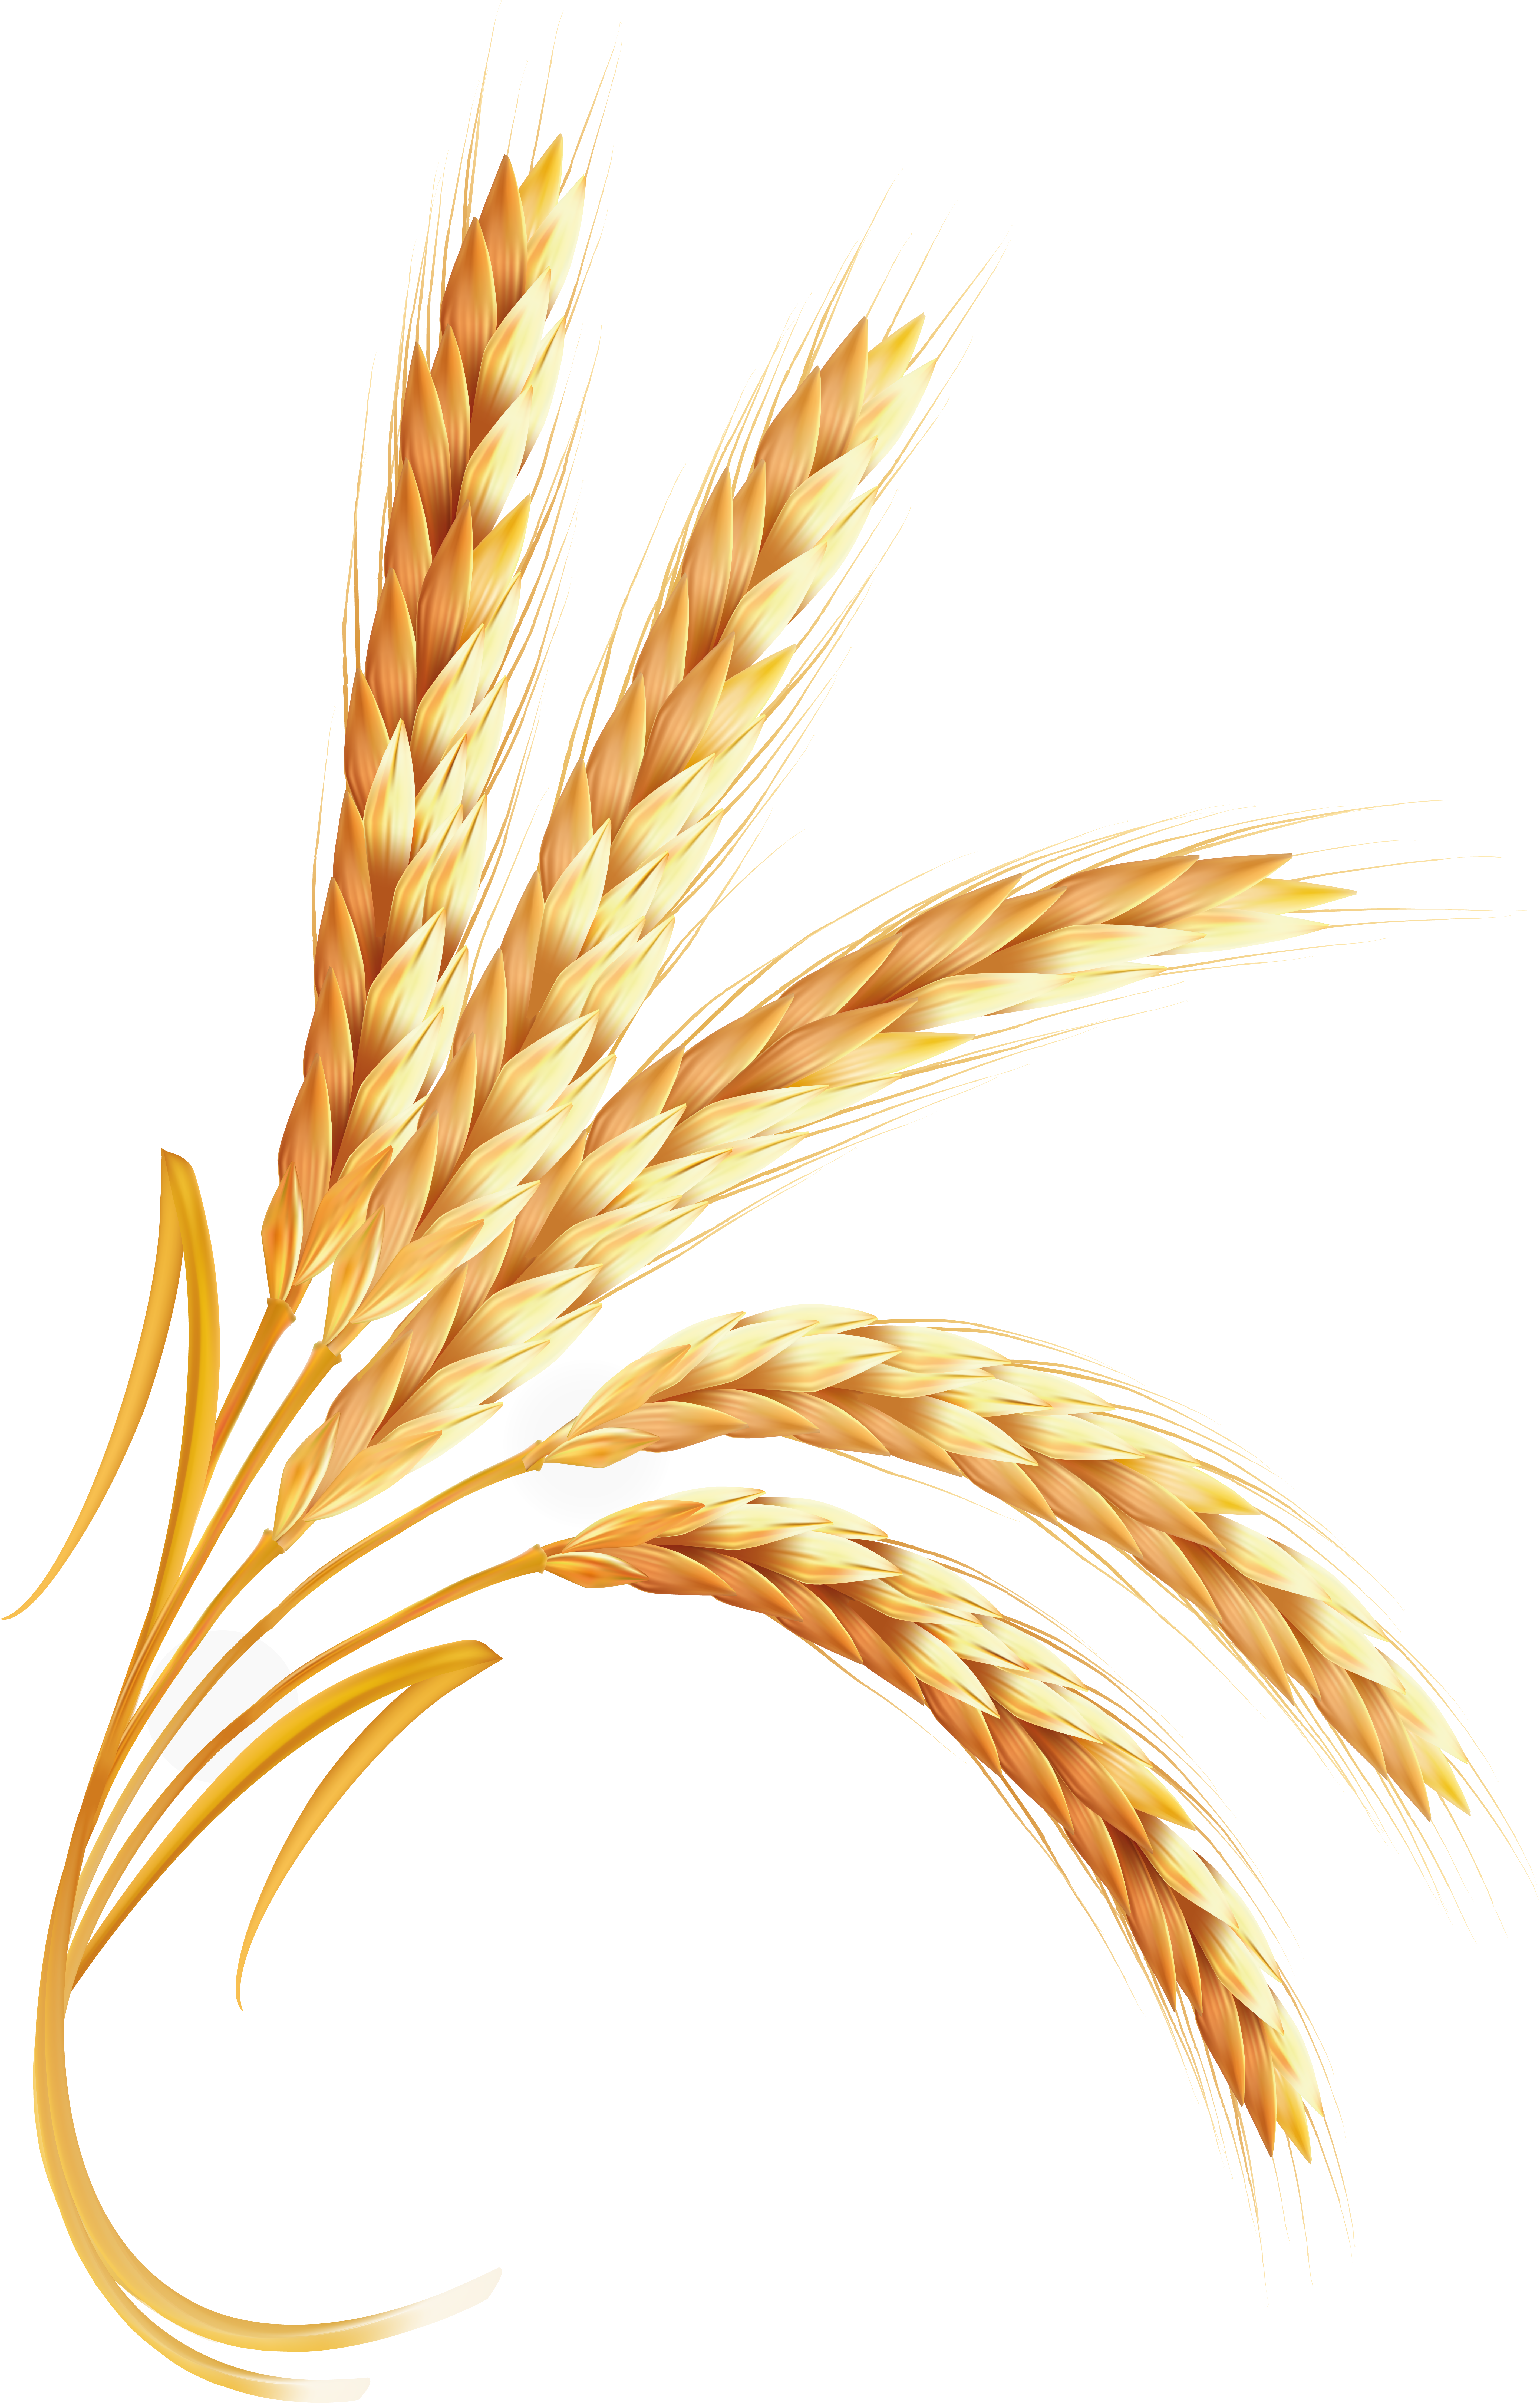 Wheat png images.